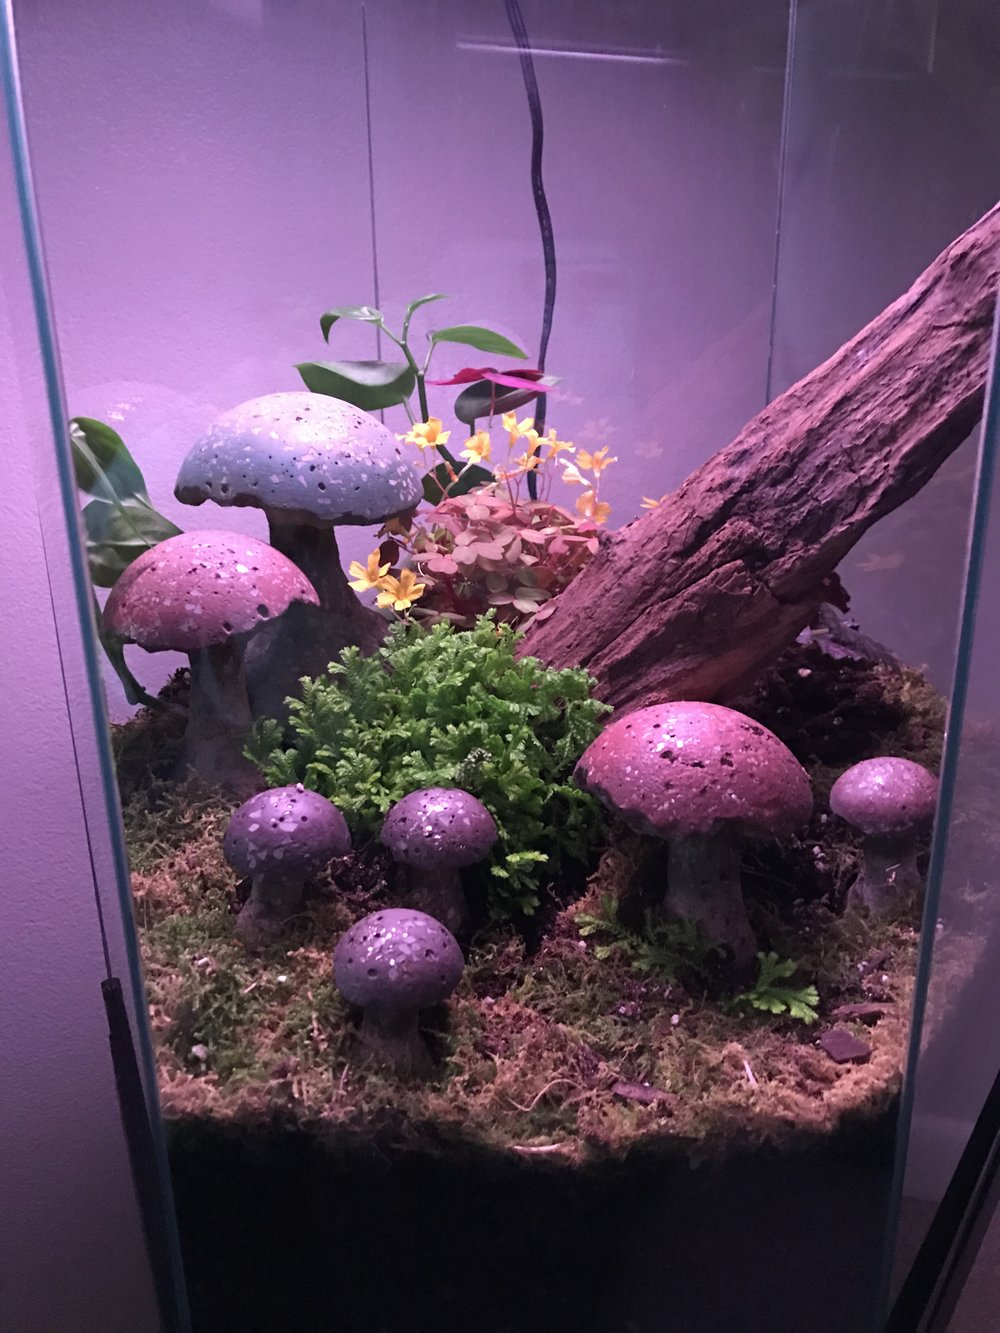 Mushrooms in a terrarium.